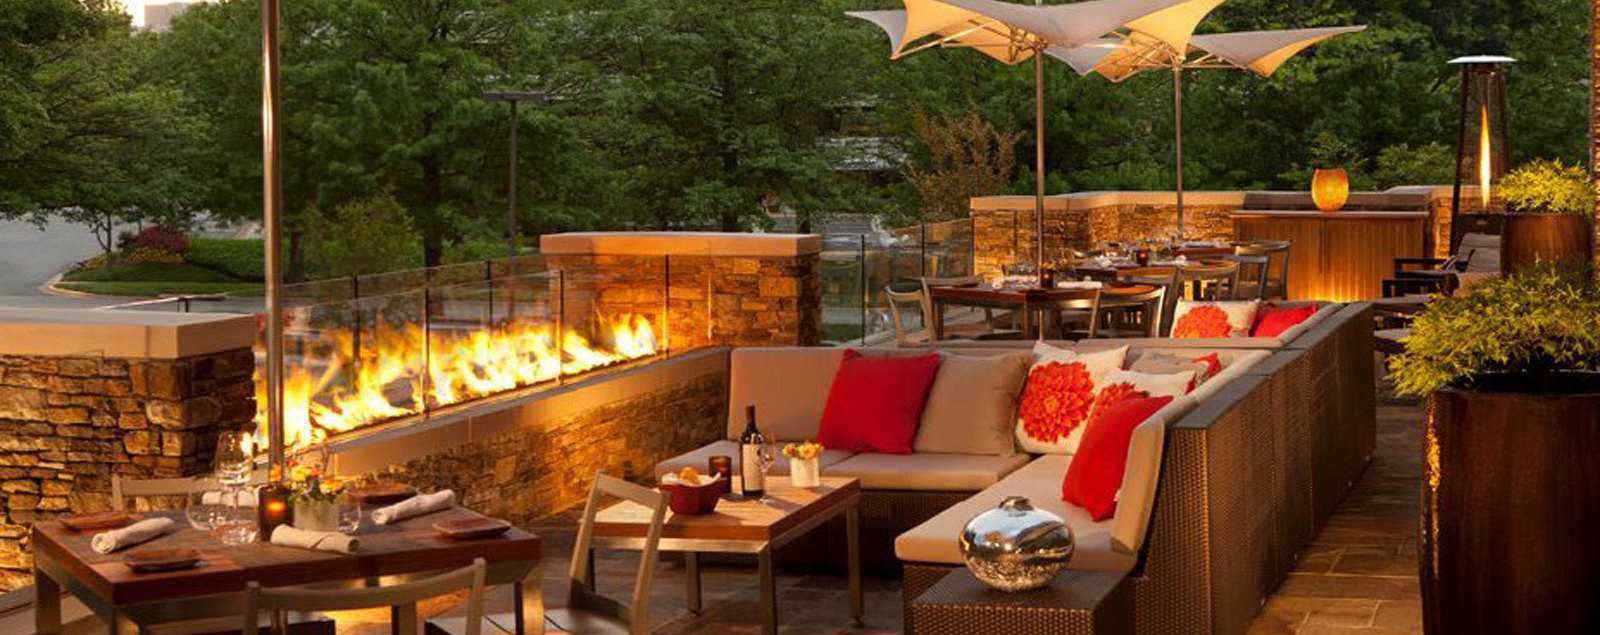 Outdoor Patios Outdoor Dining & Restaurants With Patios  Fairfax County Virginia